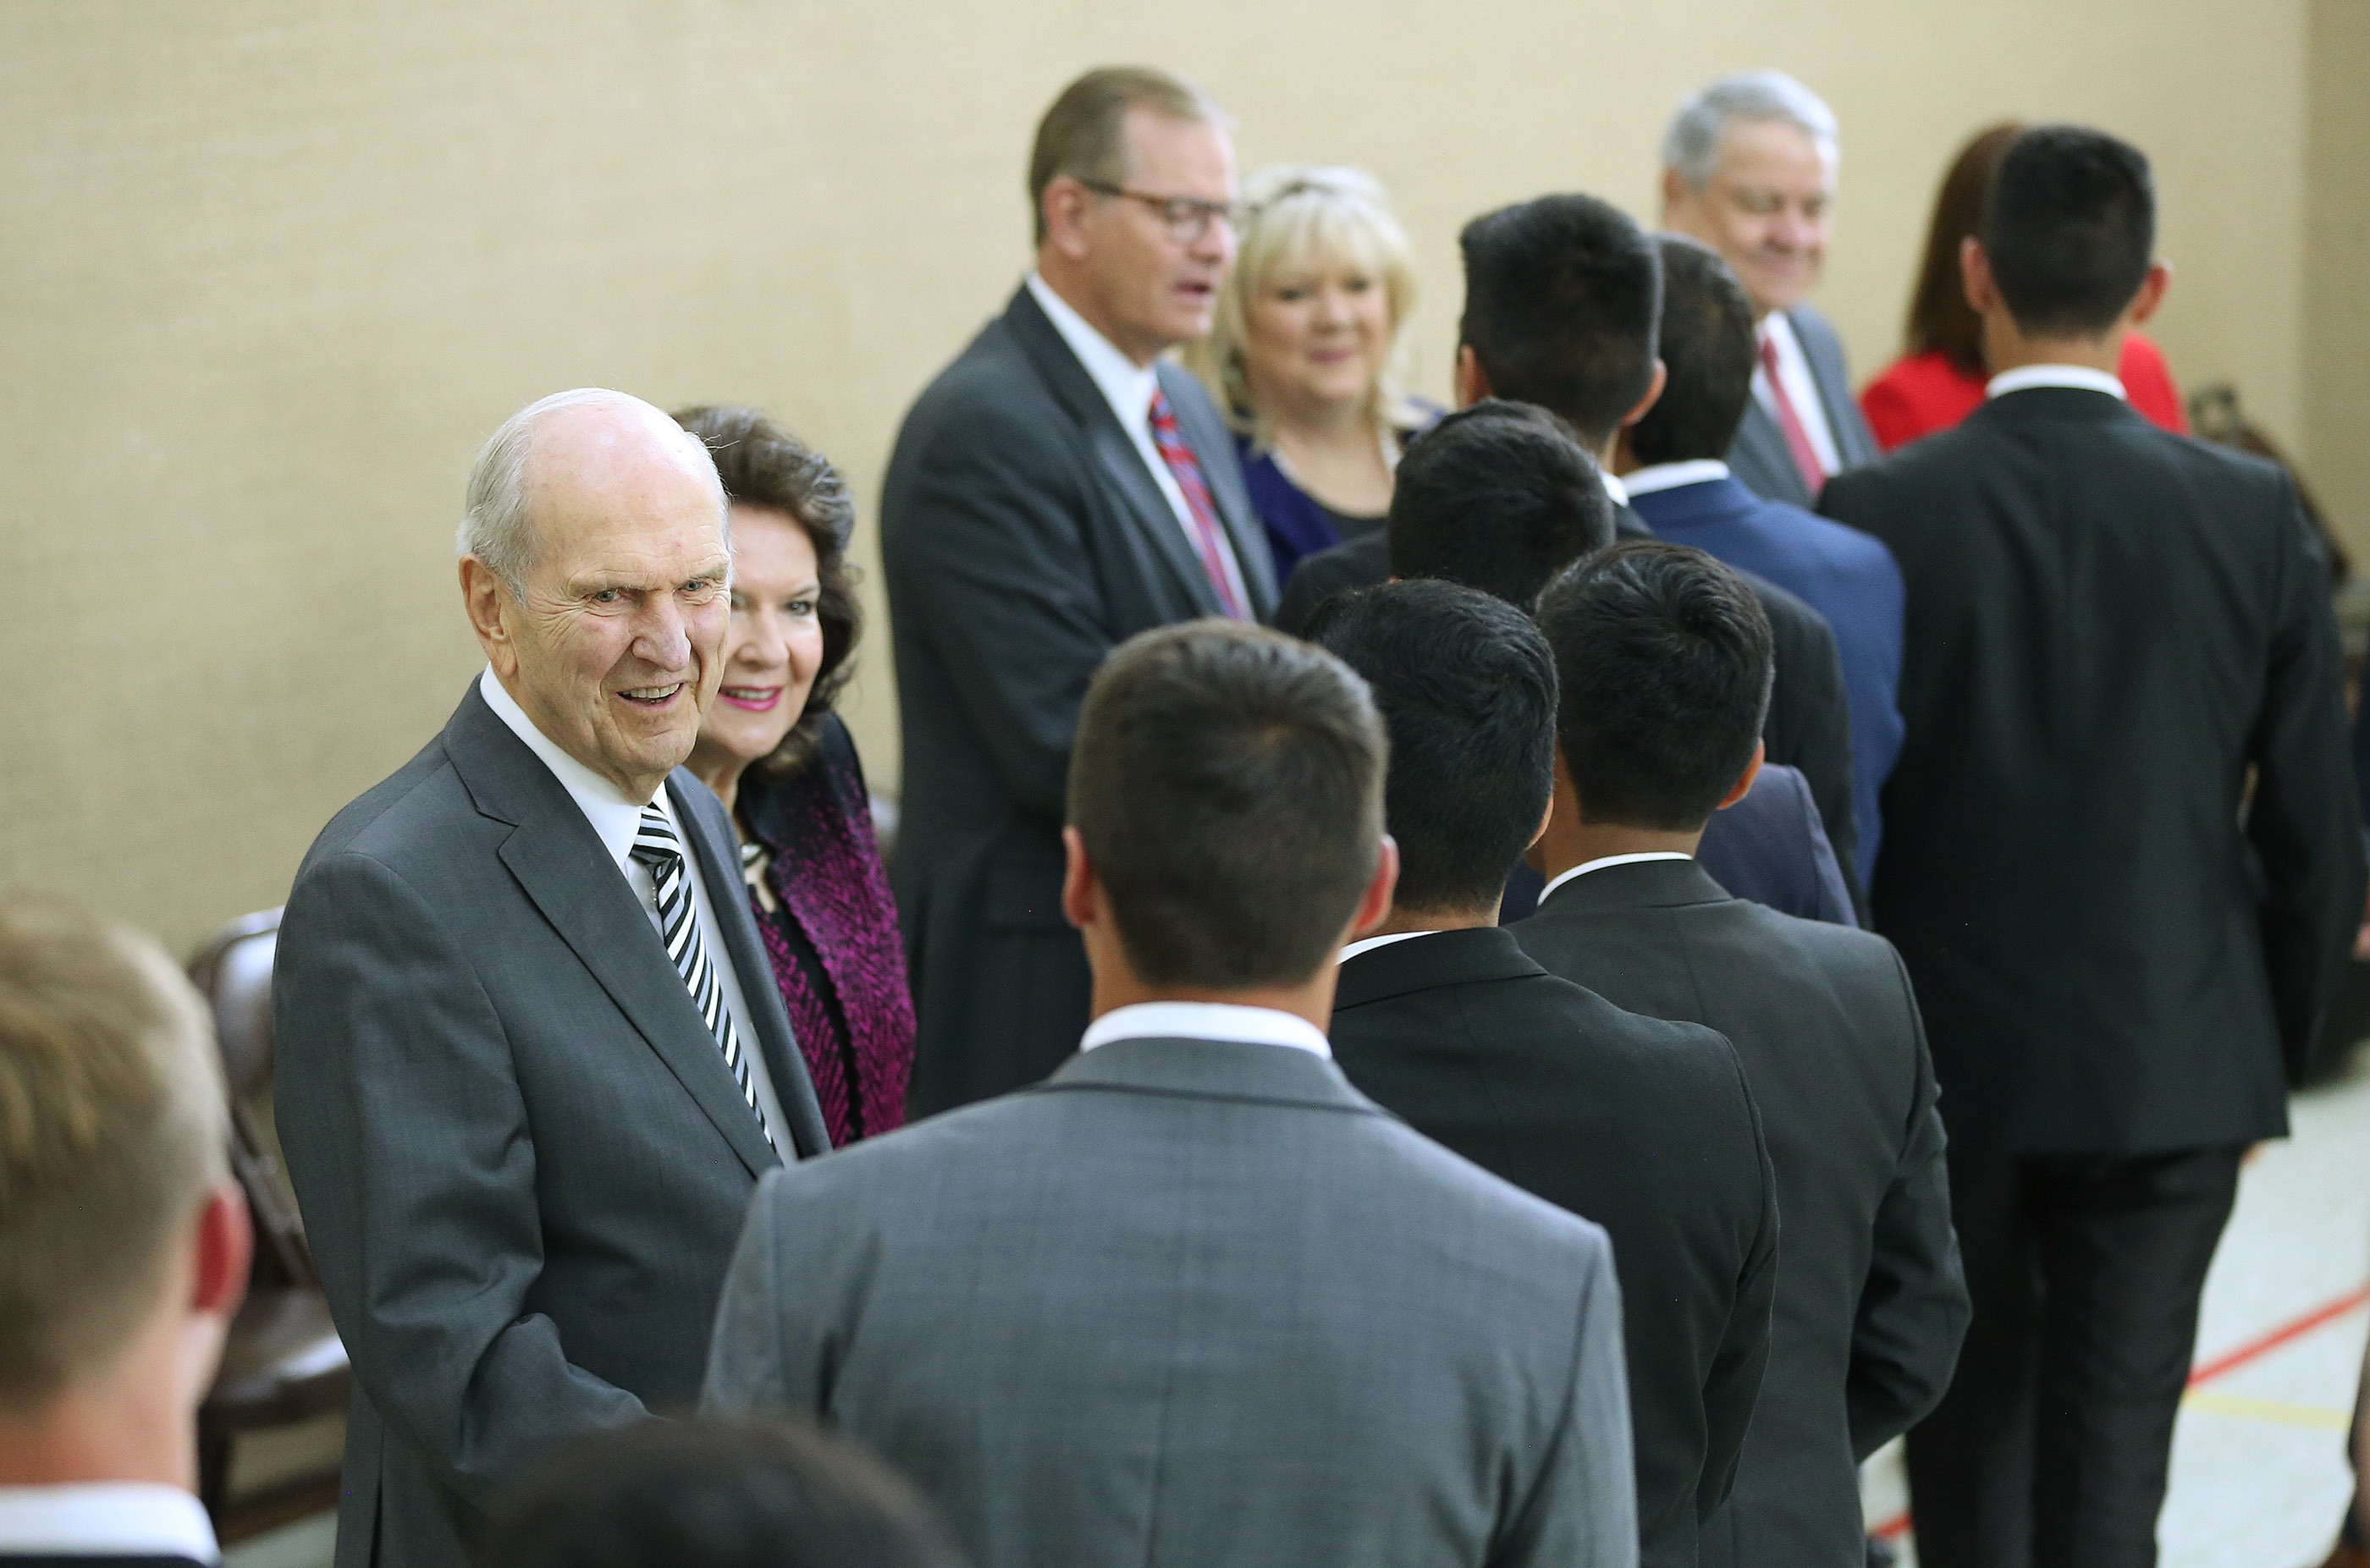 President Russell M. Nelson of The Church of Jesus Christ of Latter-day Saints, and his wife, Sister Wendy Nelson, and Elder Gary E. Stevenson of the Quorum of the Twelve Apostles and his wife, Sister Lesa Stevenson, greet missionaries prior to a missionary meeting in Montevideo, Uruguay on Thursday, Oct. 25, 2018.